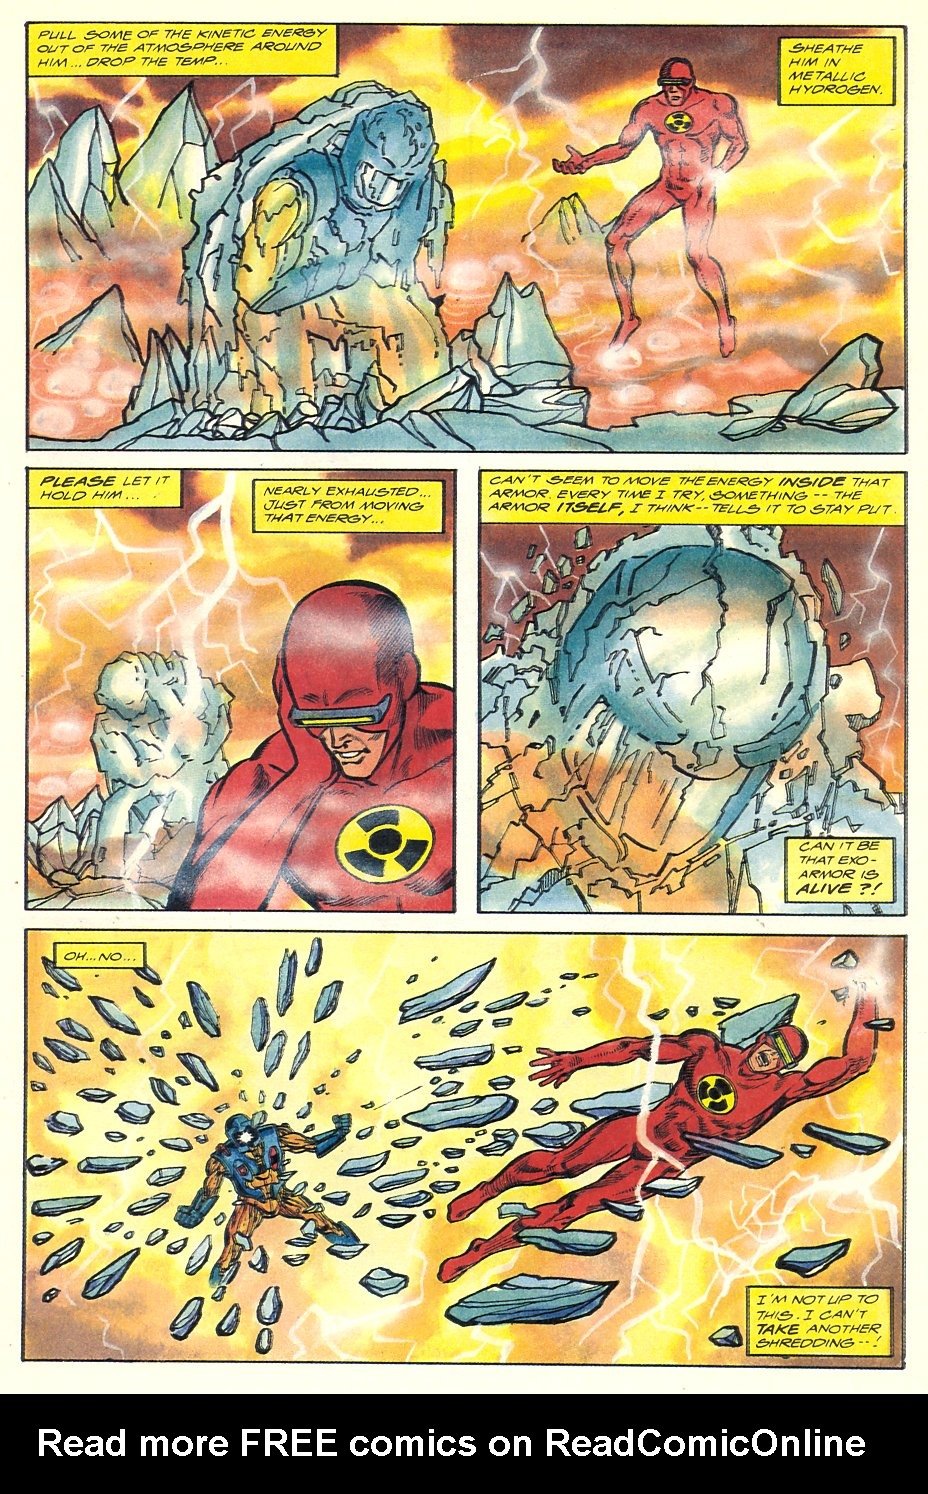 Read online Solar, Man of the Atom comic -  Issue #7 - 30